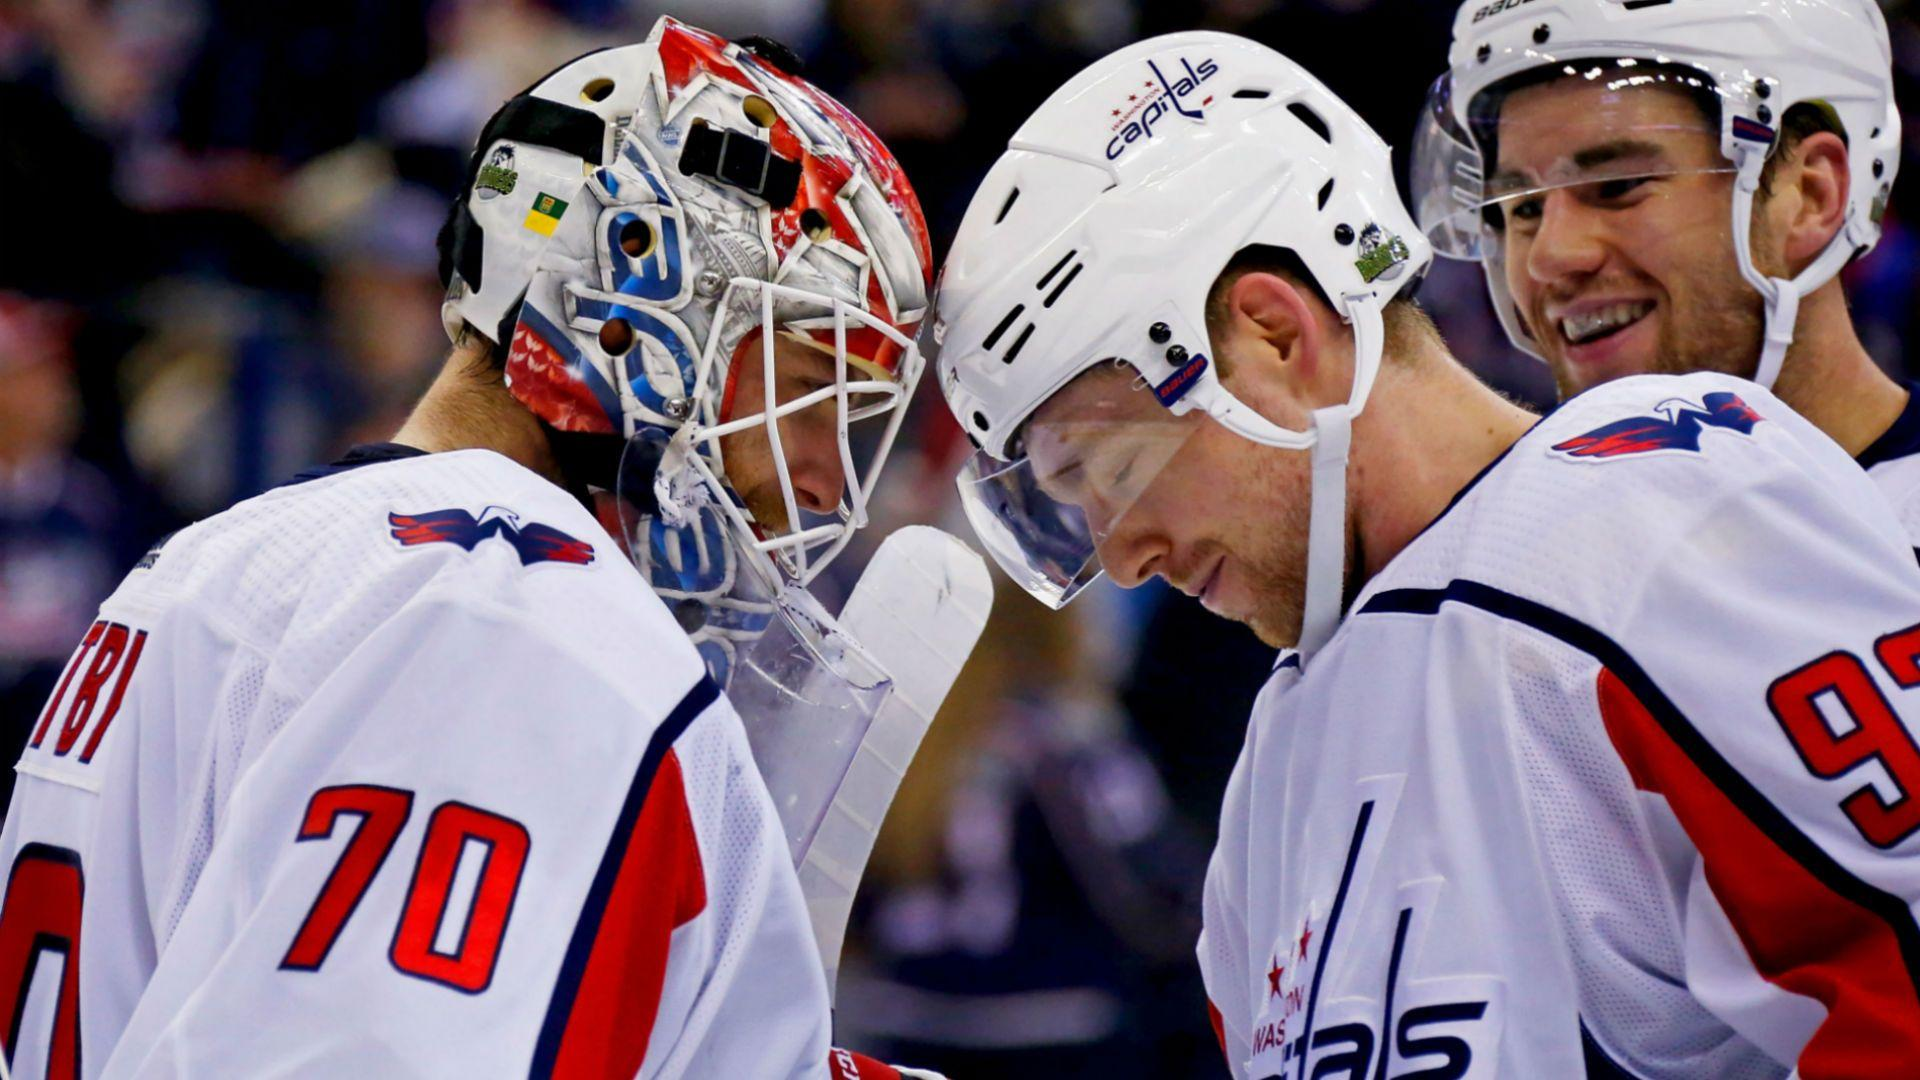 NHL playoffs 2018: Braden Holtby bounces back from benching as